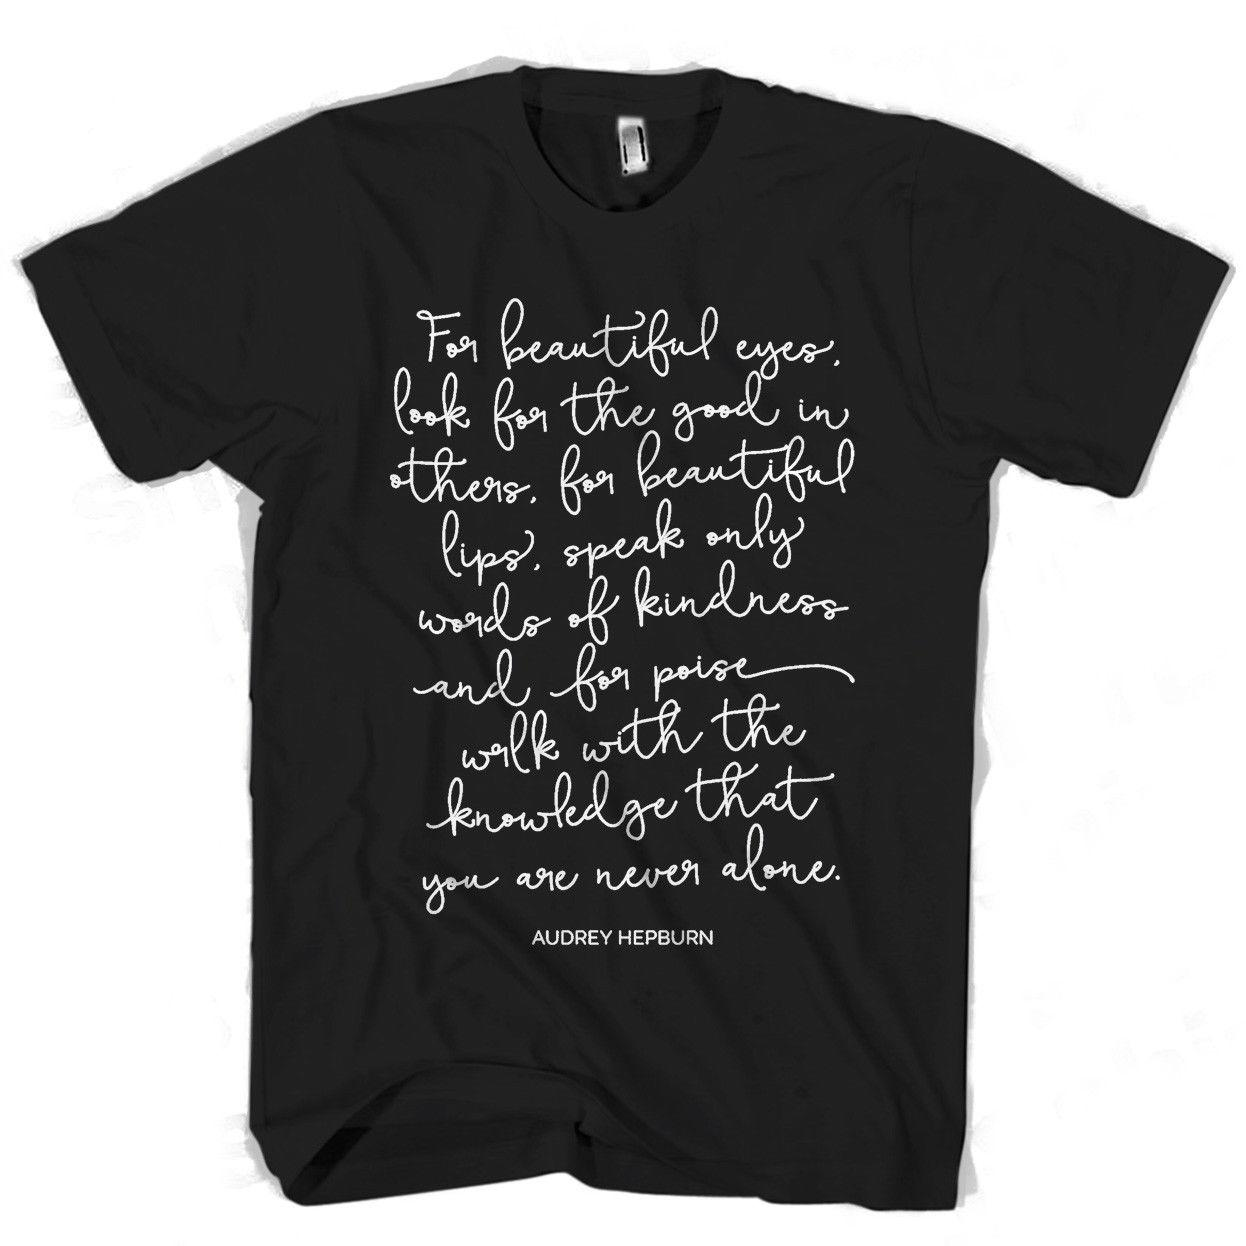 Audrey Hepburn Quote For Beautiful Eyes Man Woman T Shirt Cotton